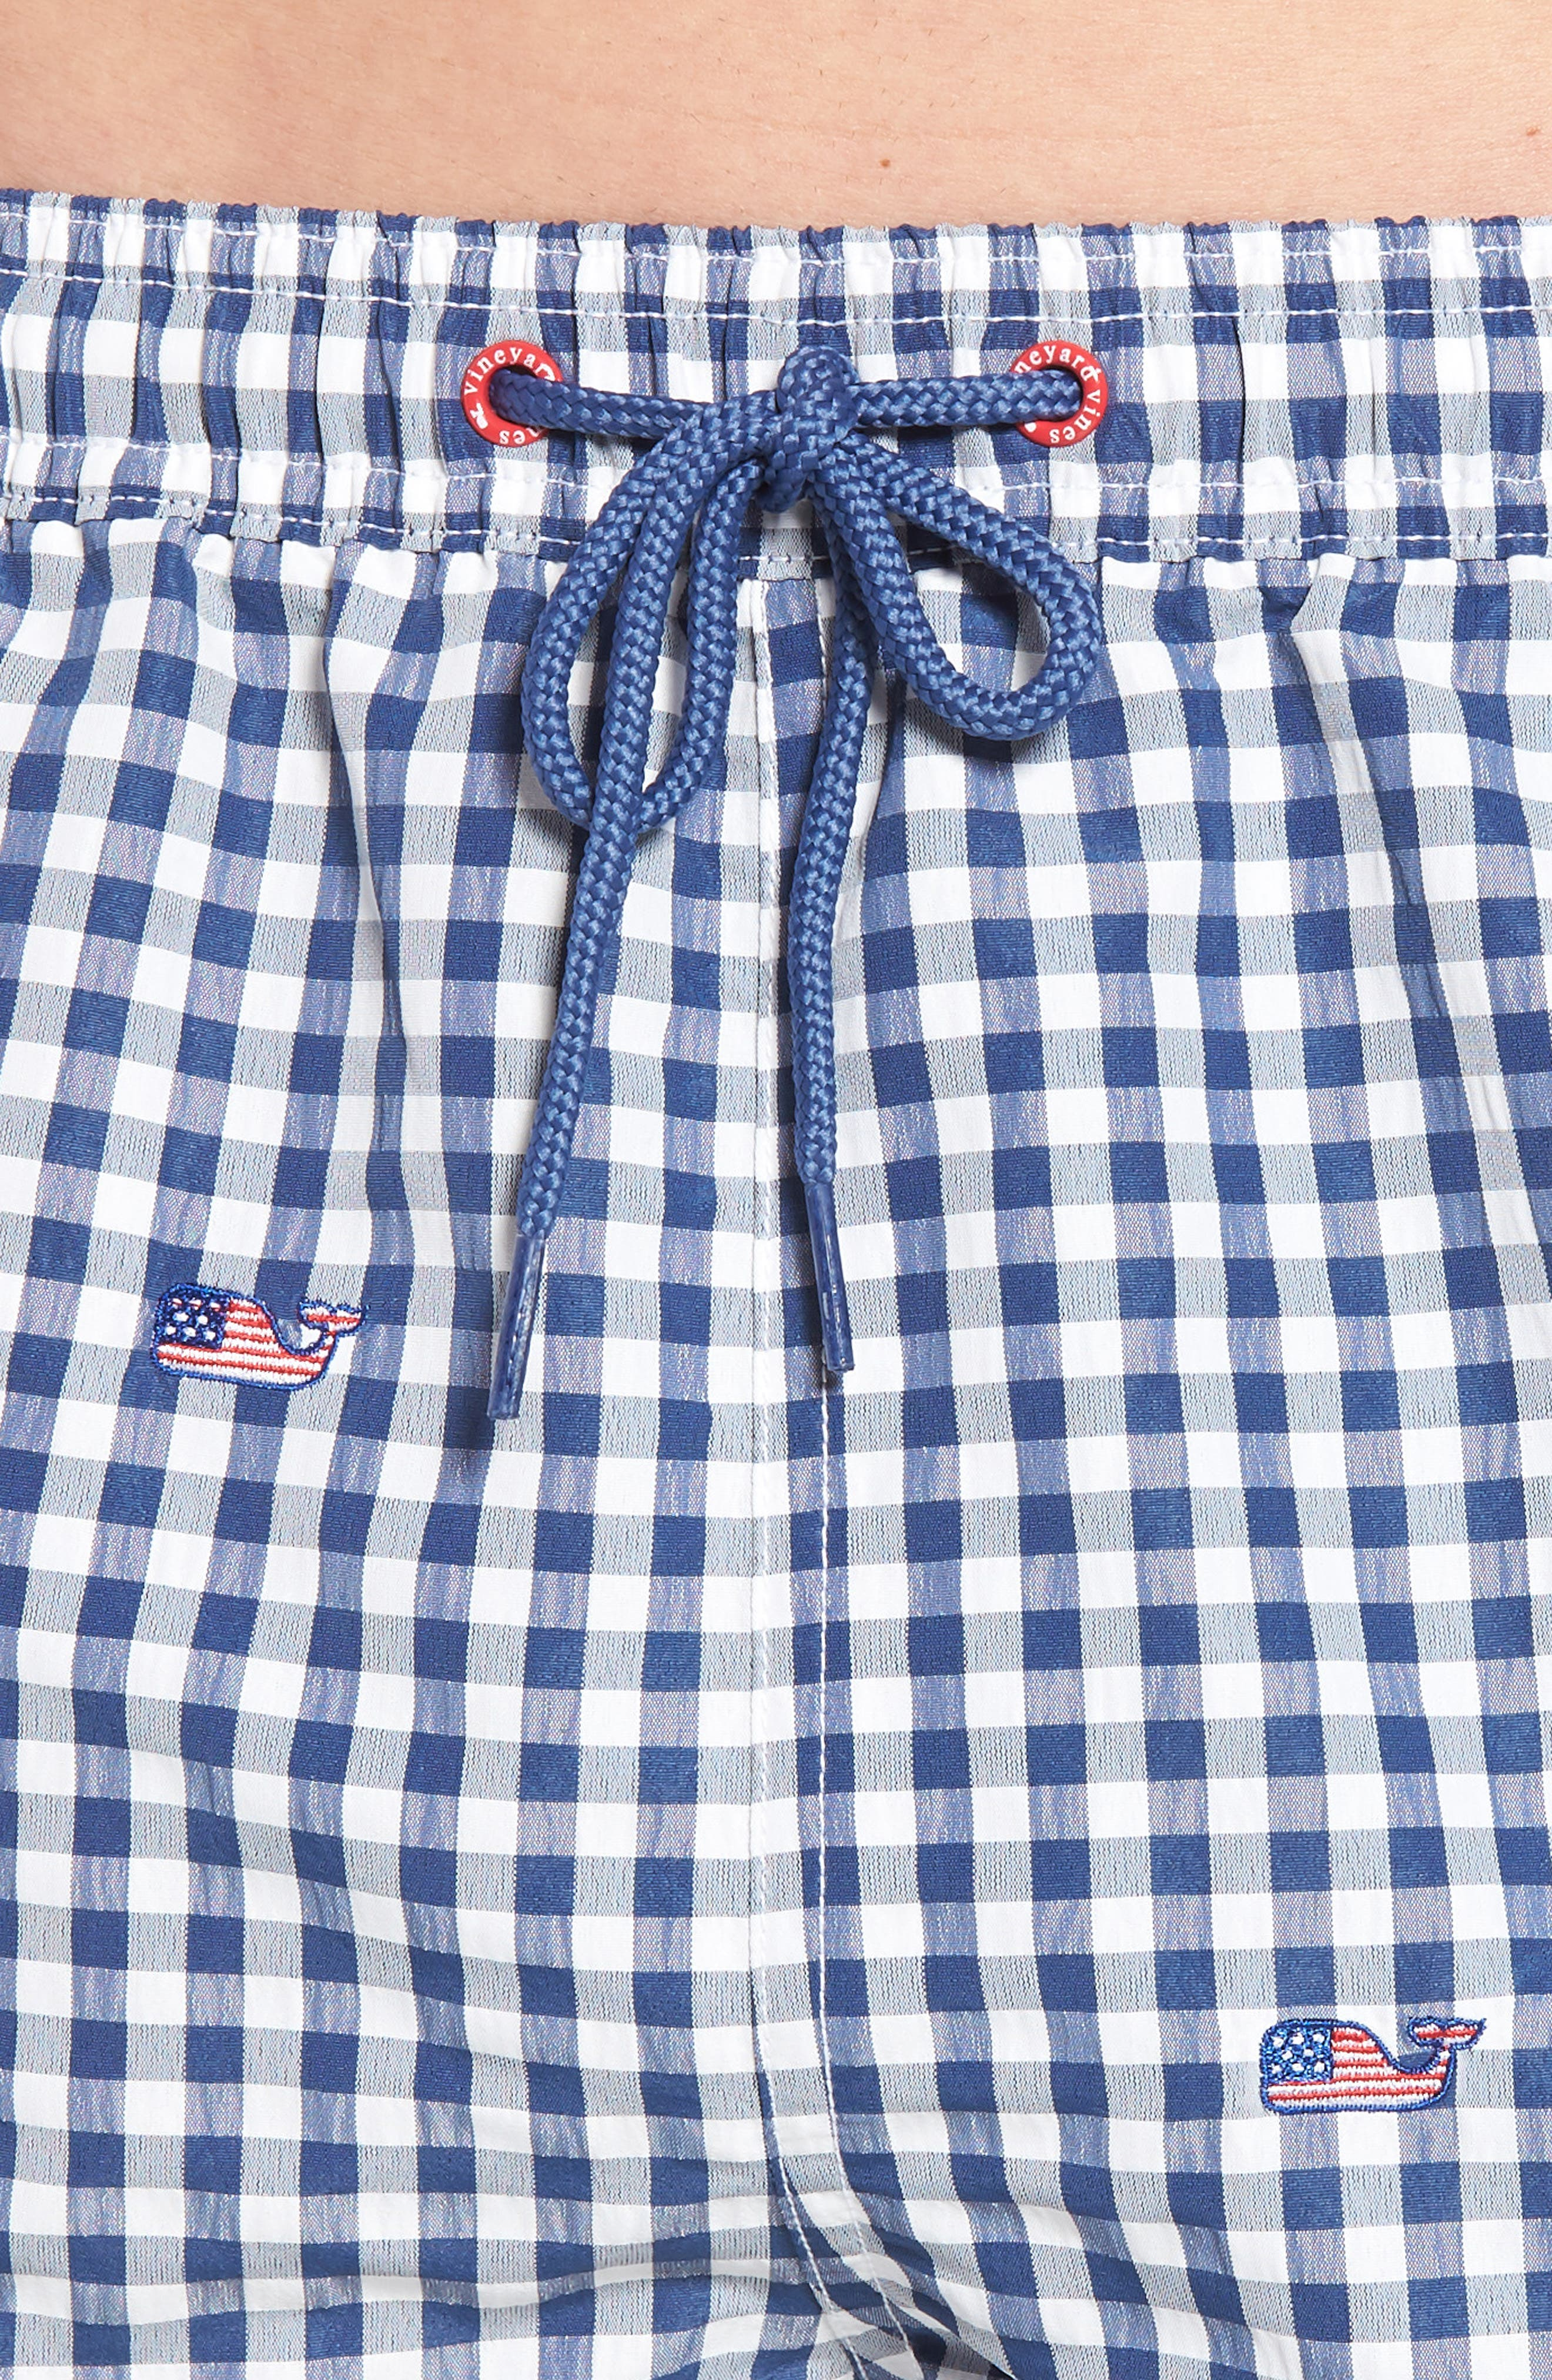 VINEYARD VINES,                             Chappy Flag Whale Embroidered Gingham Swim Trunks,                             Alternate thumbnail 4, color,                             461